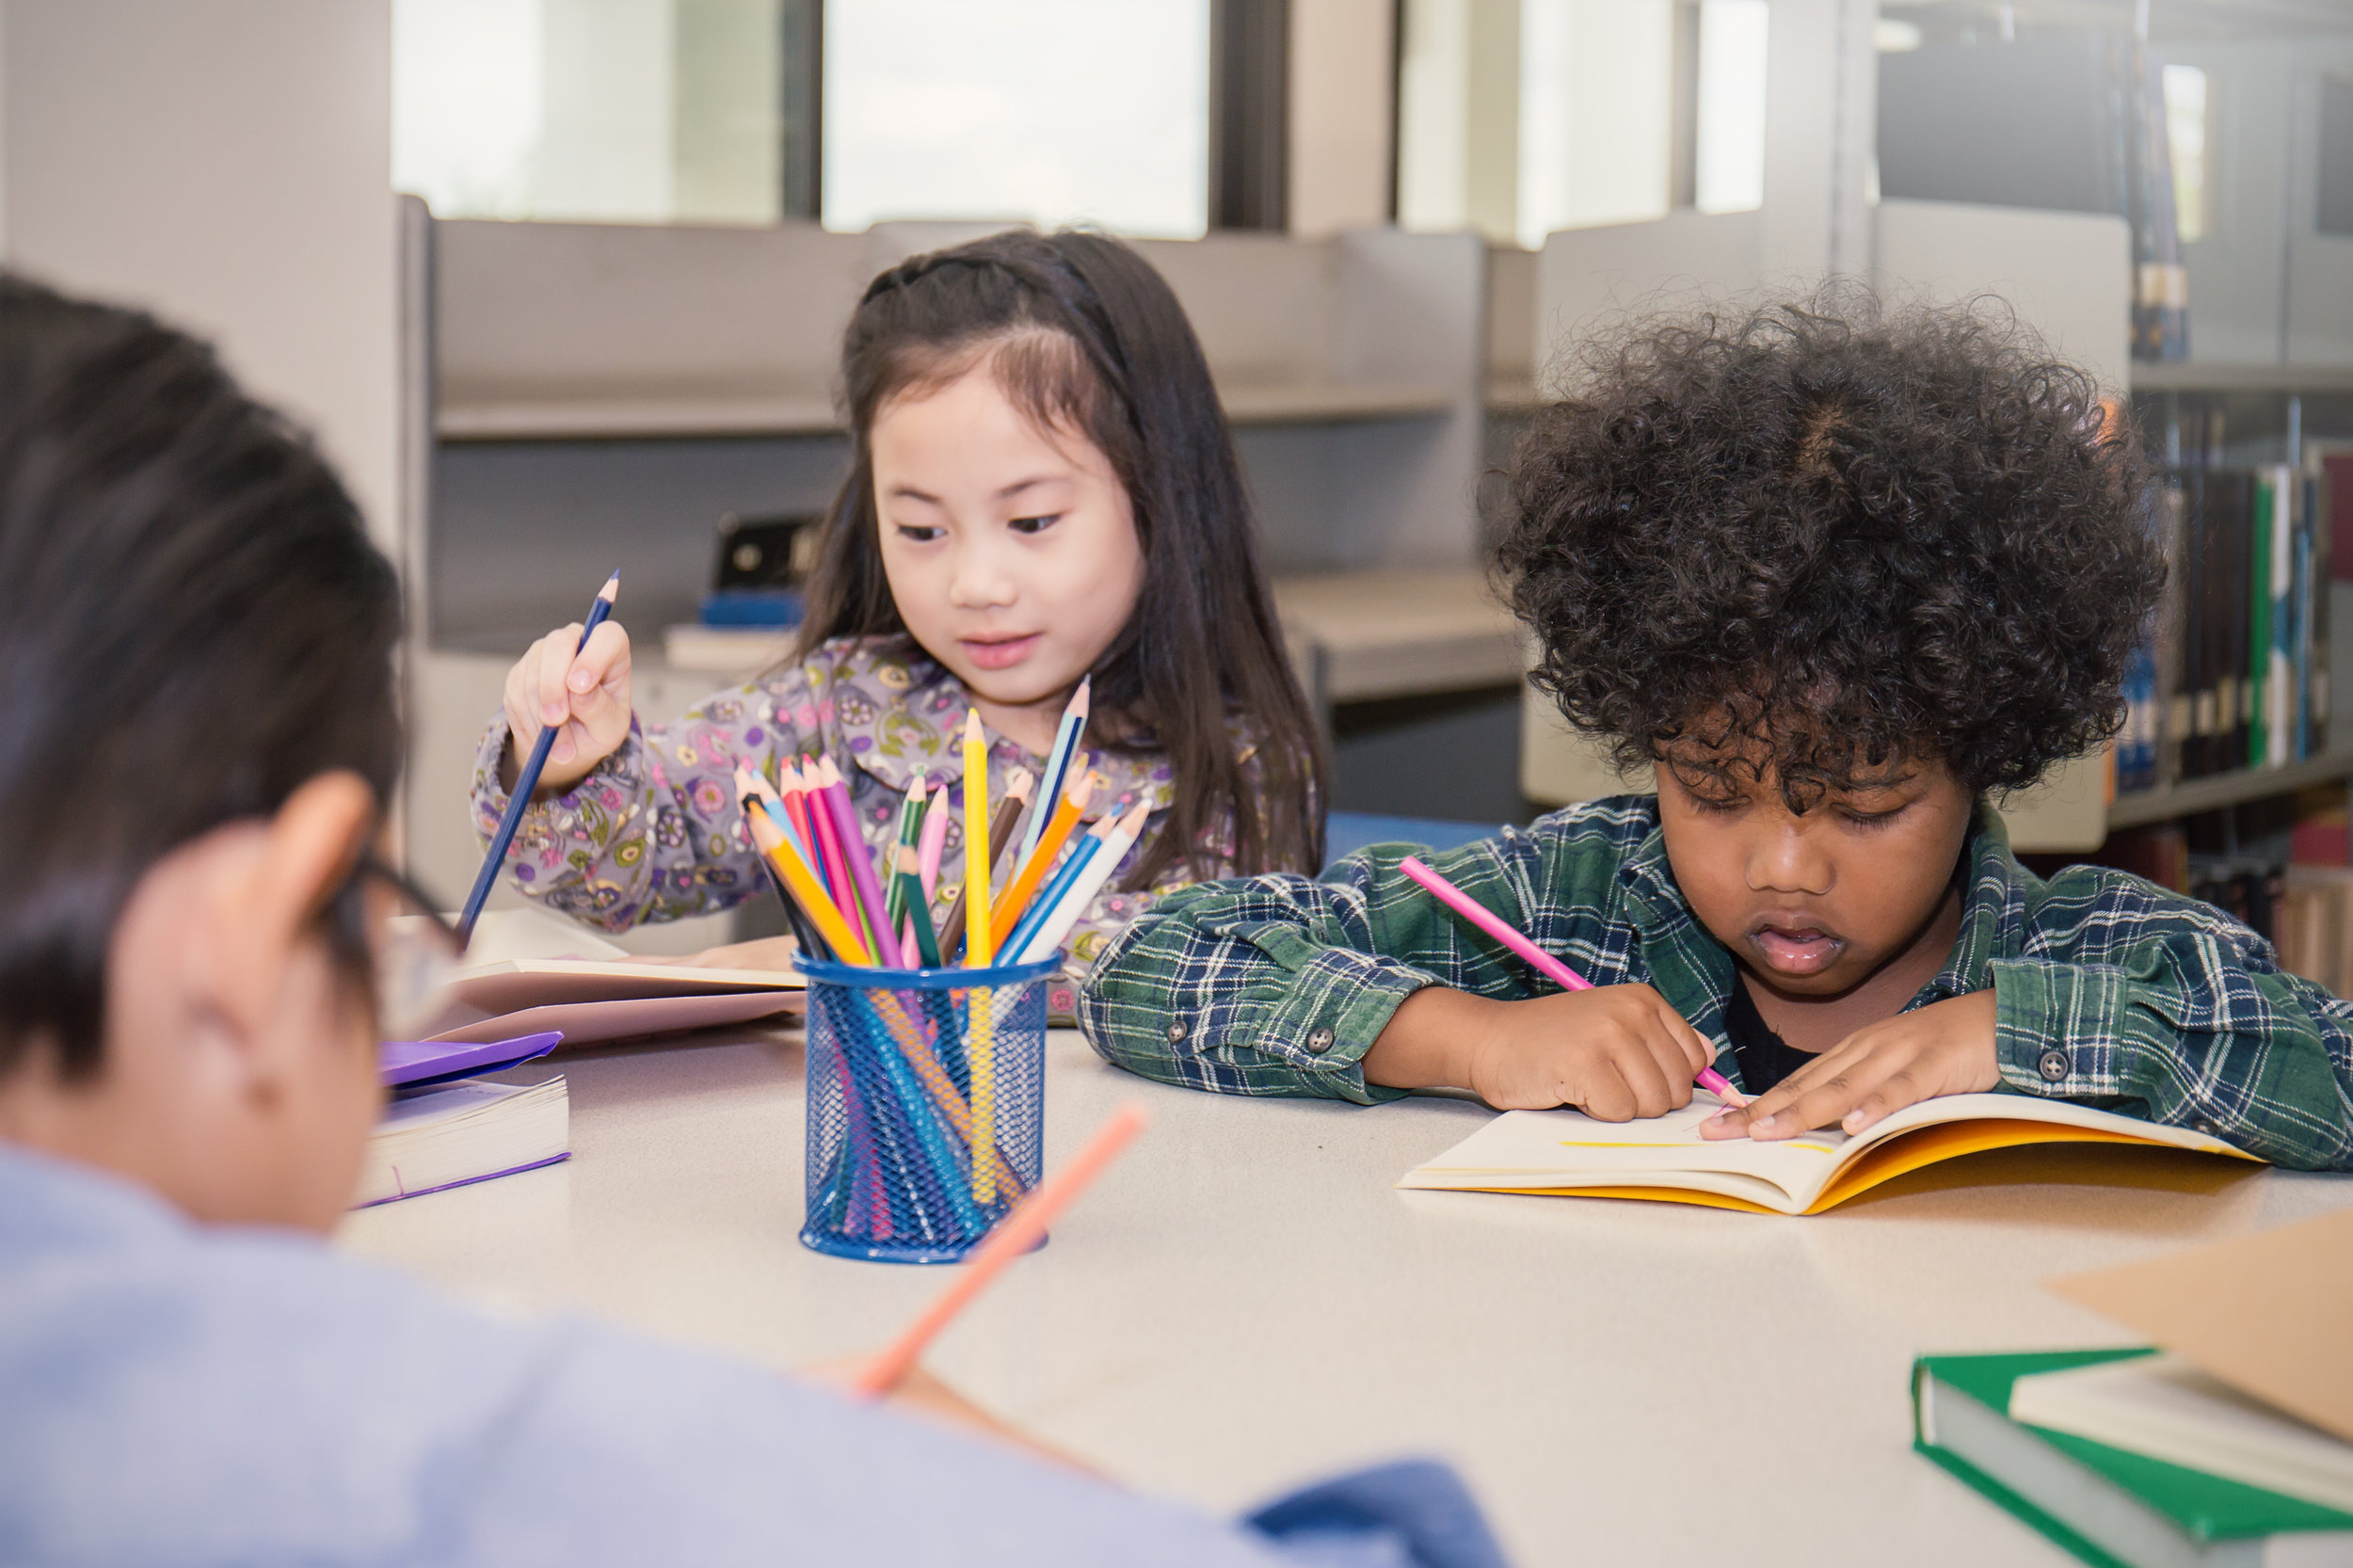 Created by participating educators, grade appropriate S.T.E.A.M. enrichment activities are also available. -